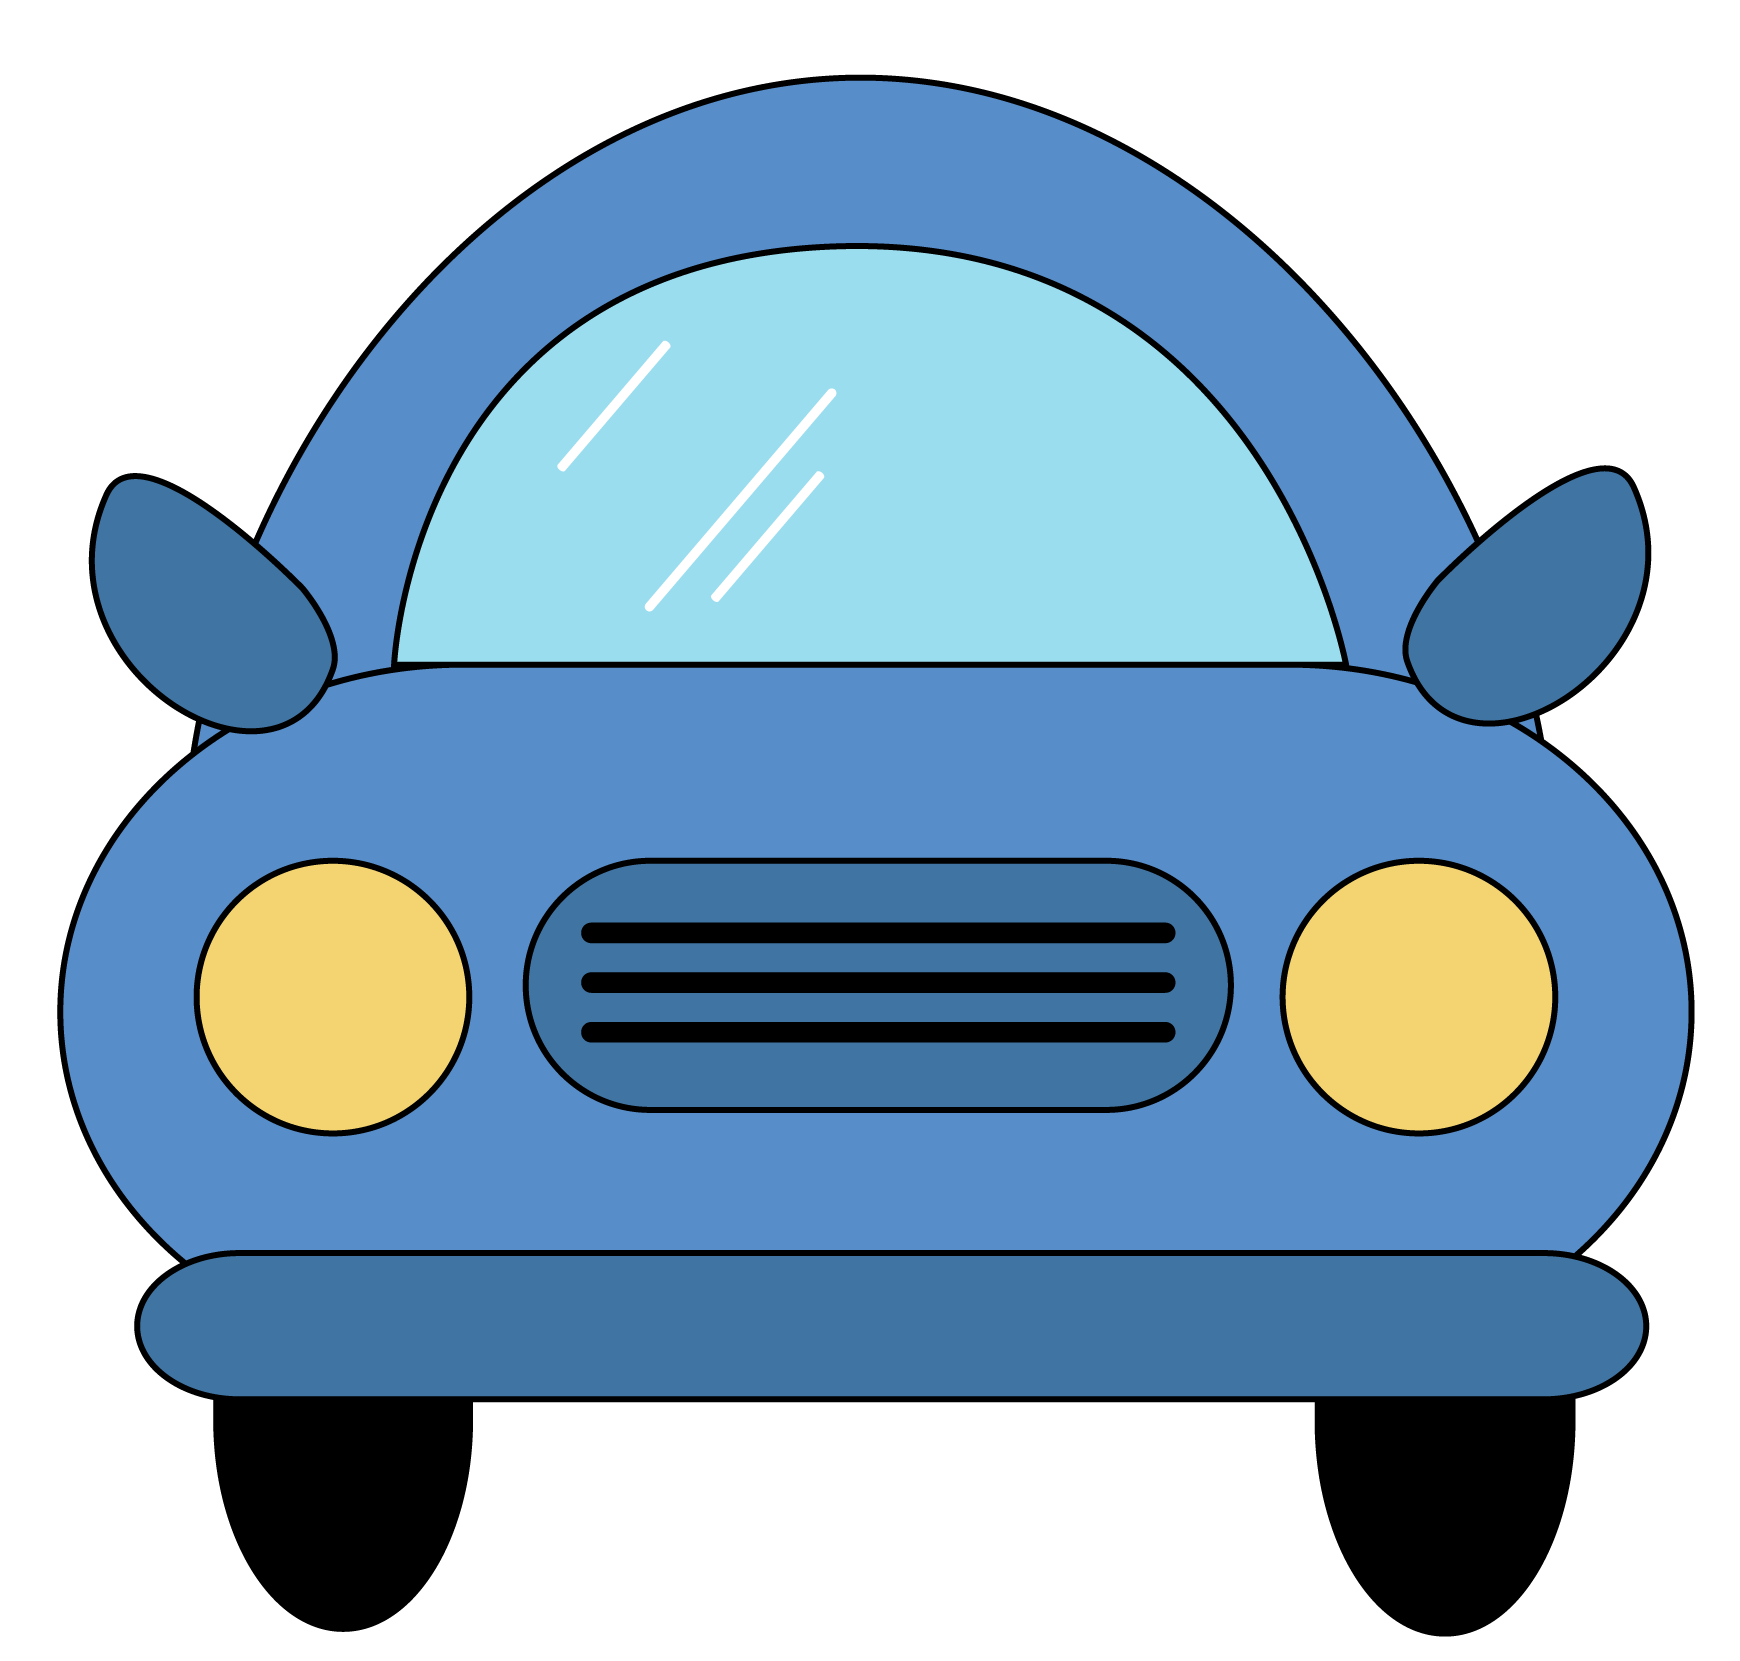 Blue clipart car picture library download Blue Car Clipart Free Download Clip Art - carwad.net picture library download